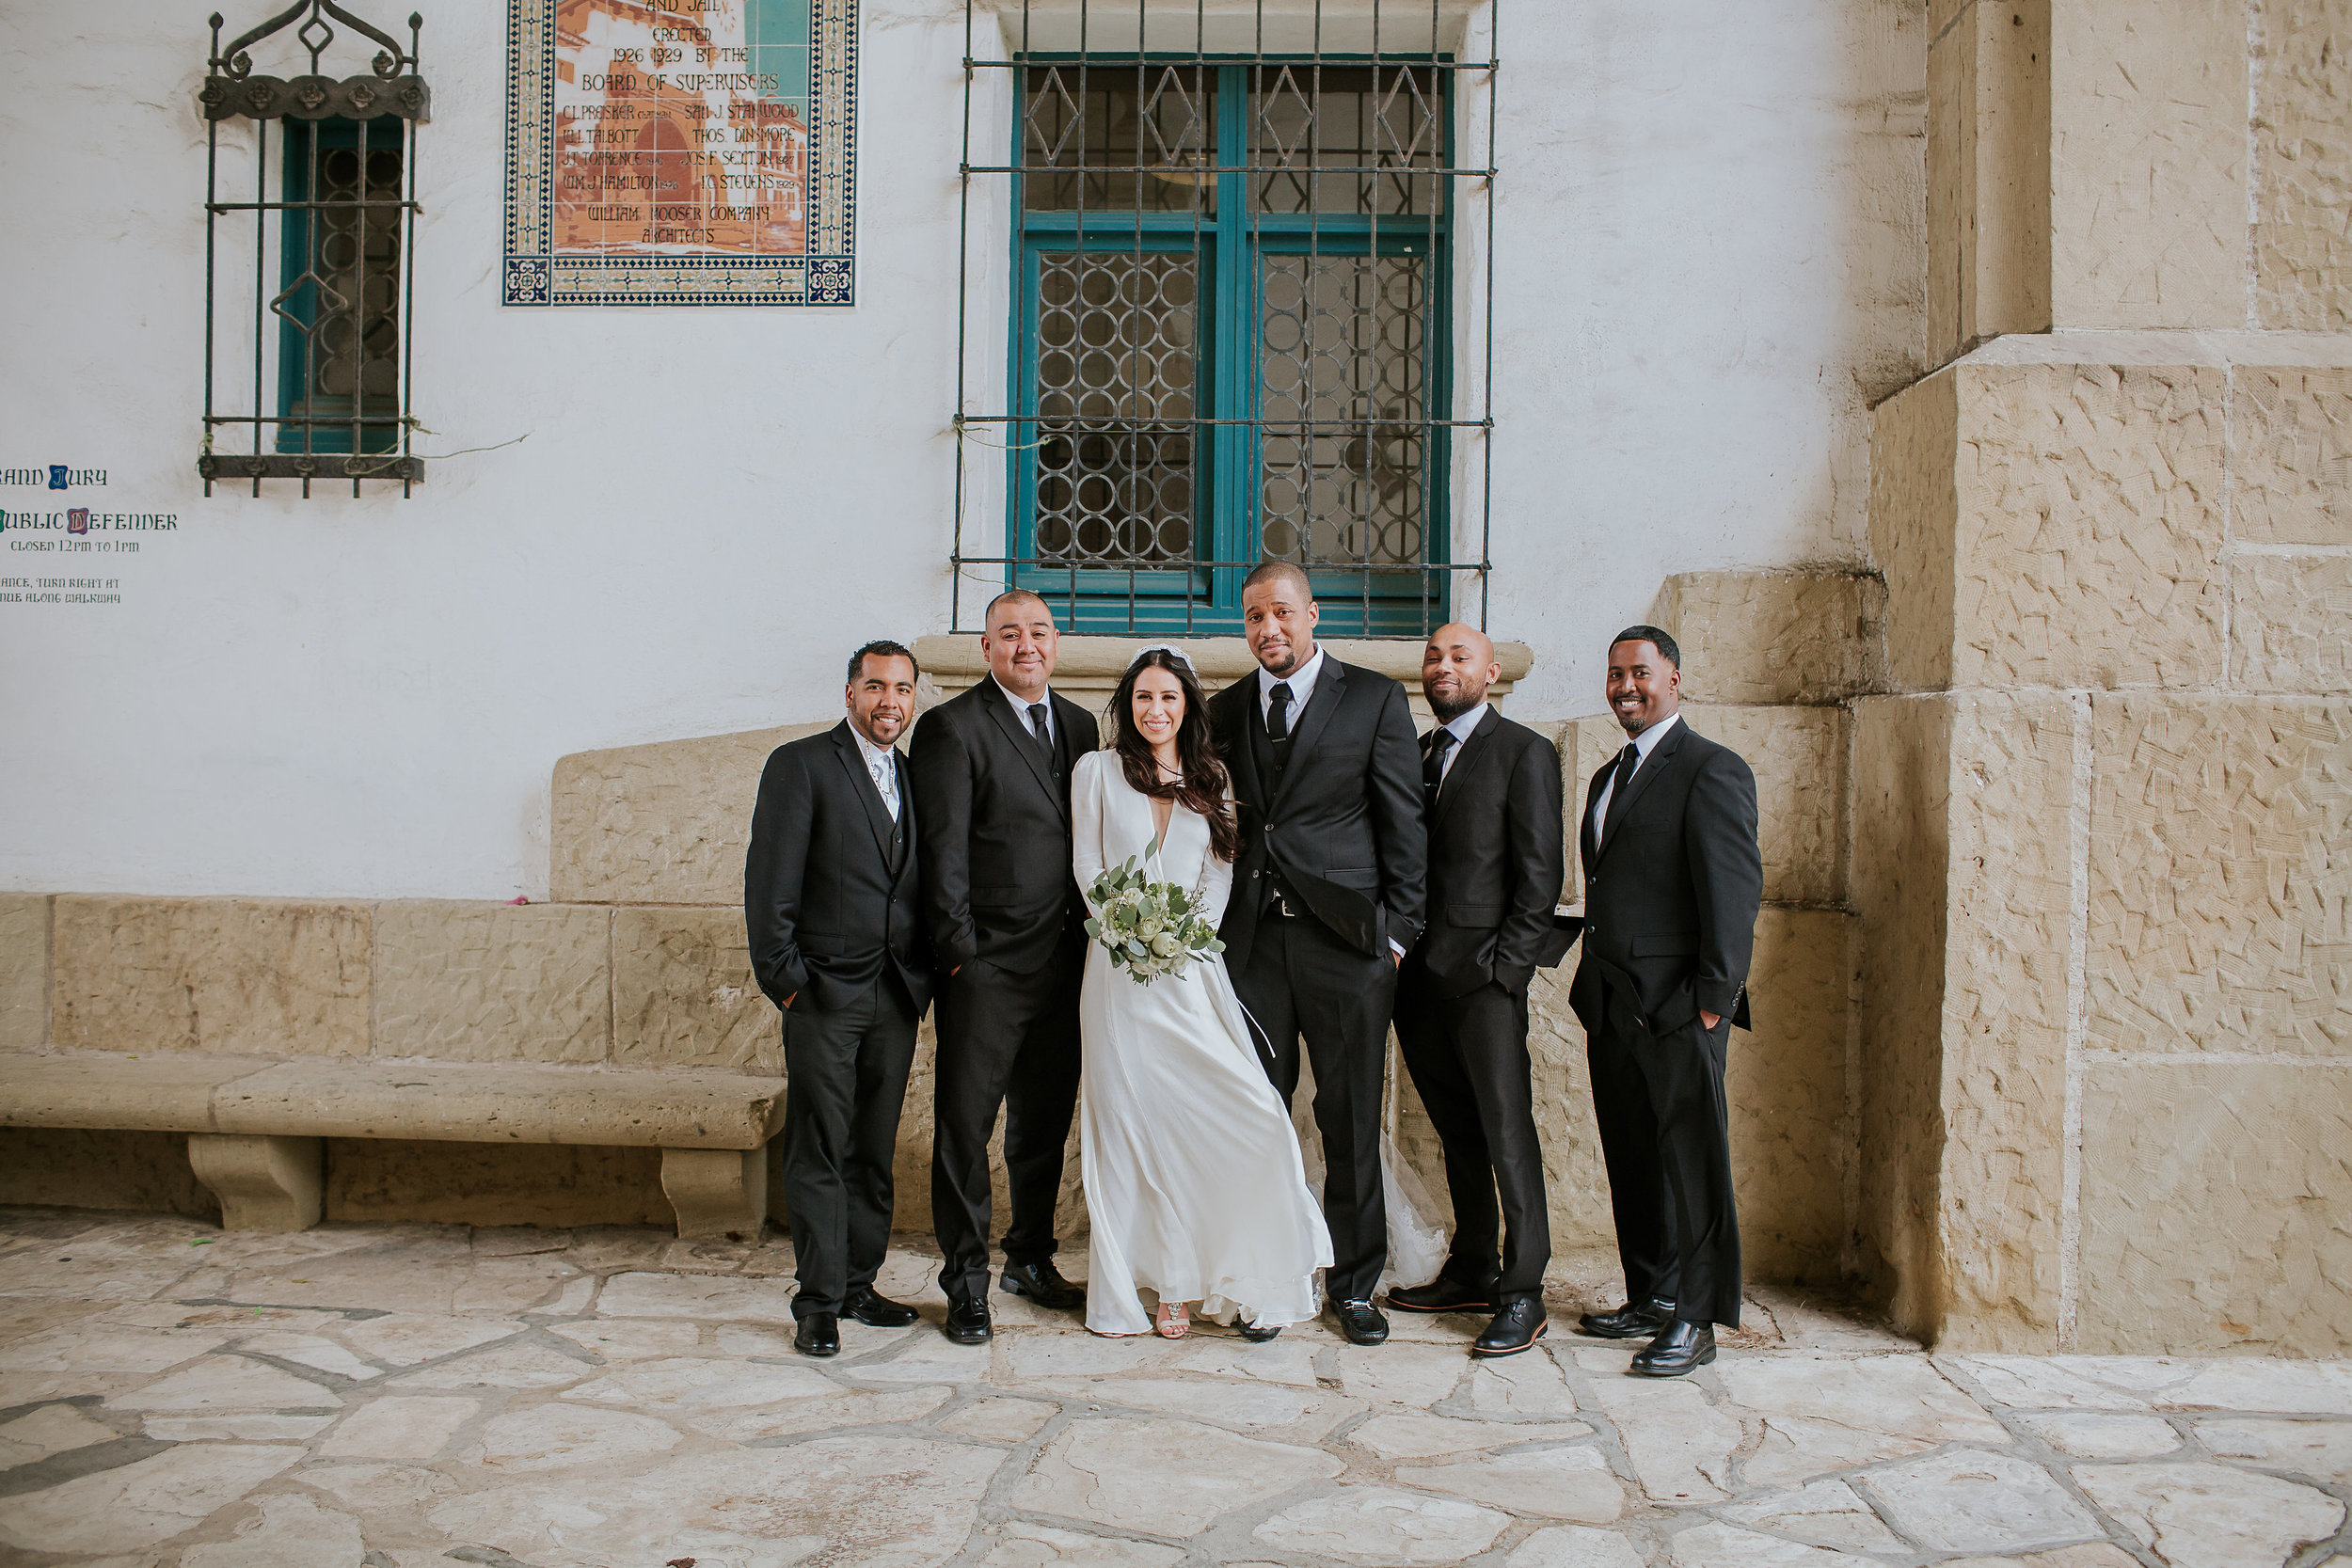 GabrielaandDeJuansantabarbaracourthouseweddingstellamaresweddingelopement-273.jpg